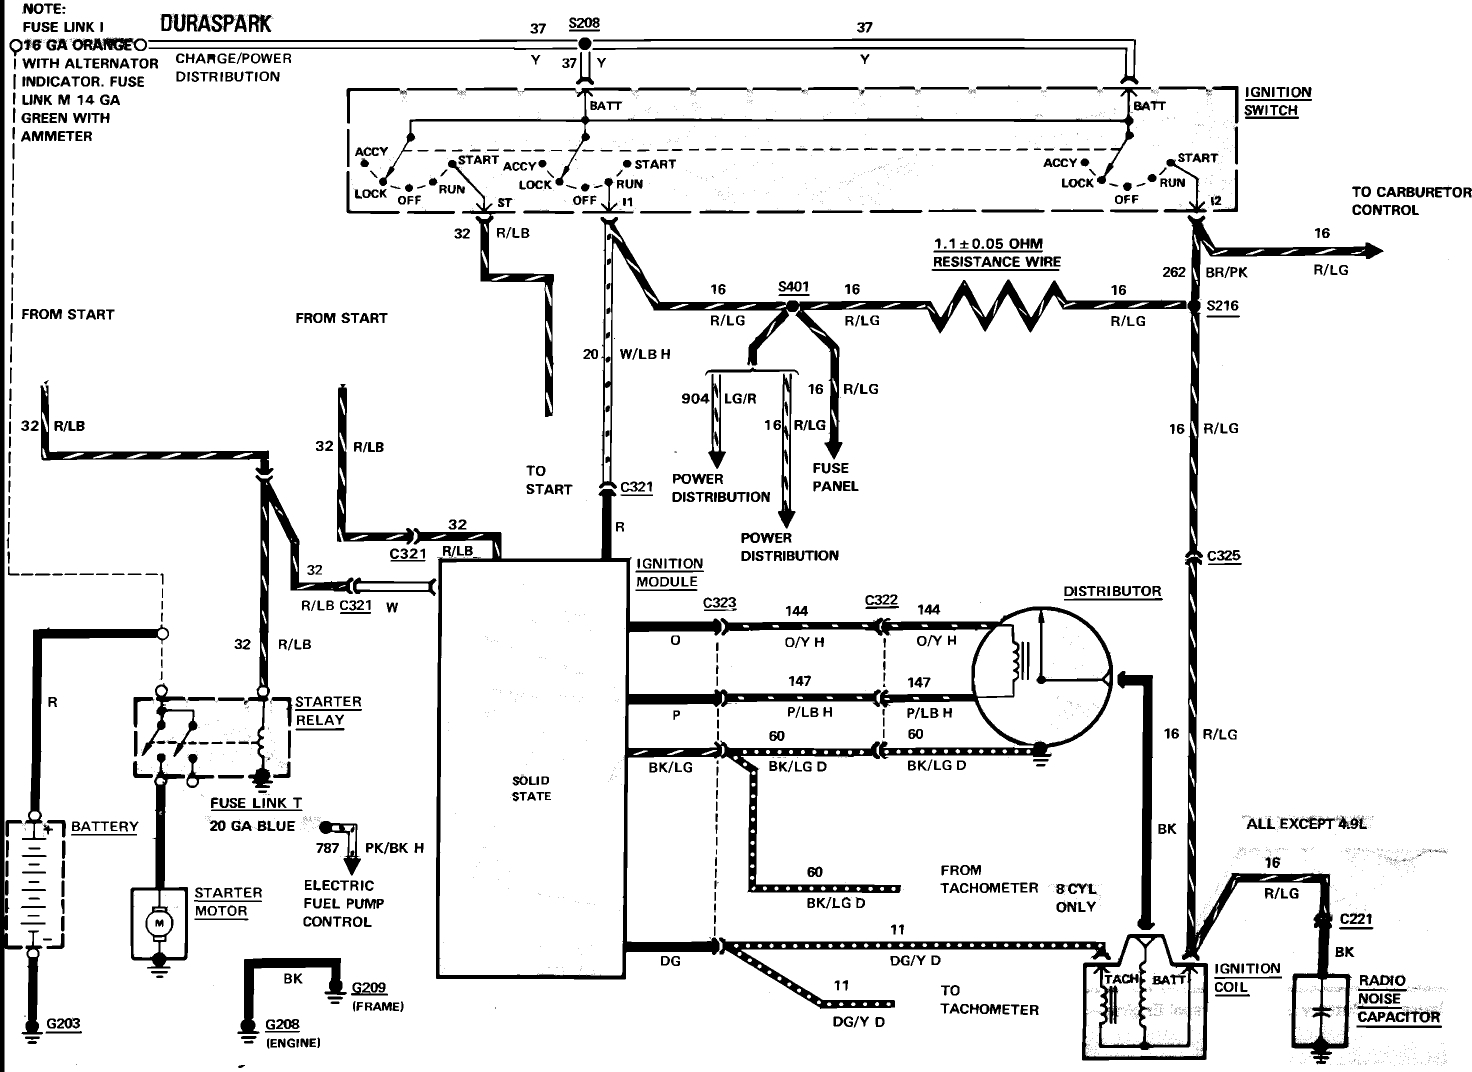 92 gm column wiring diagram